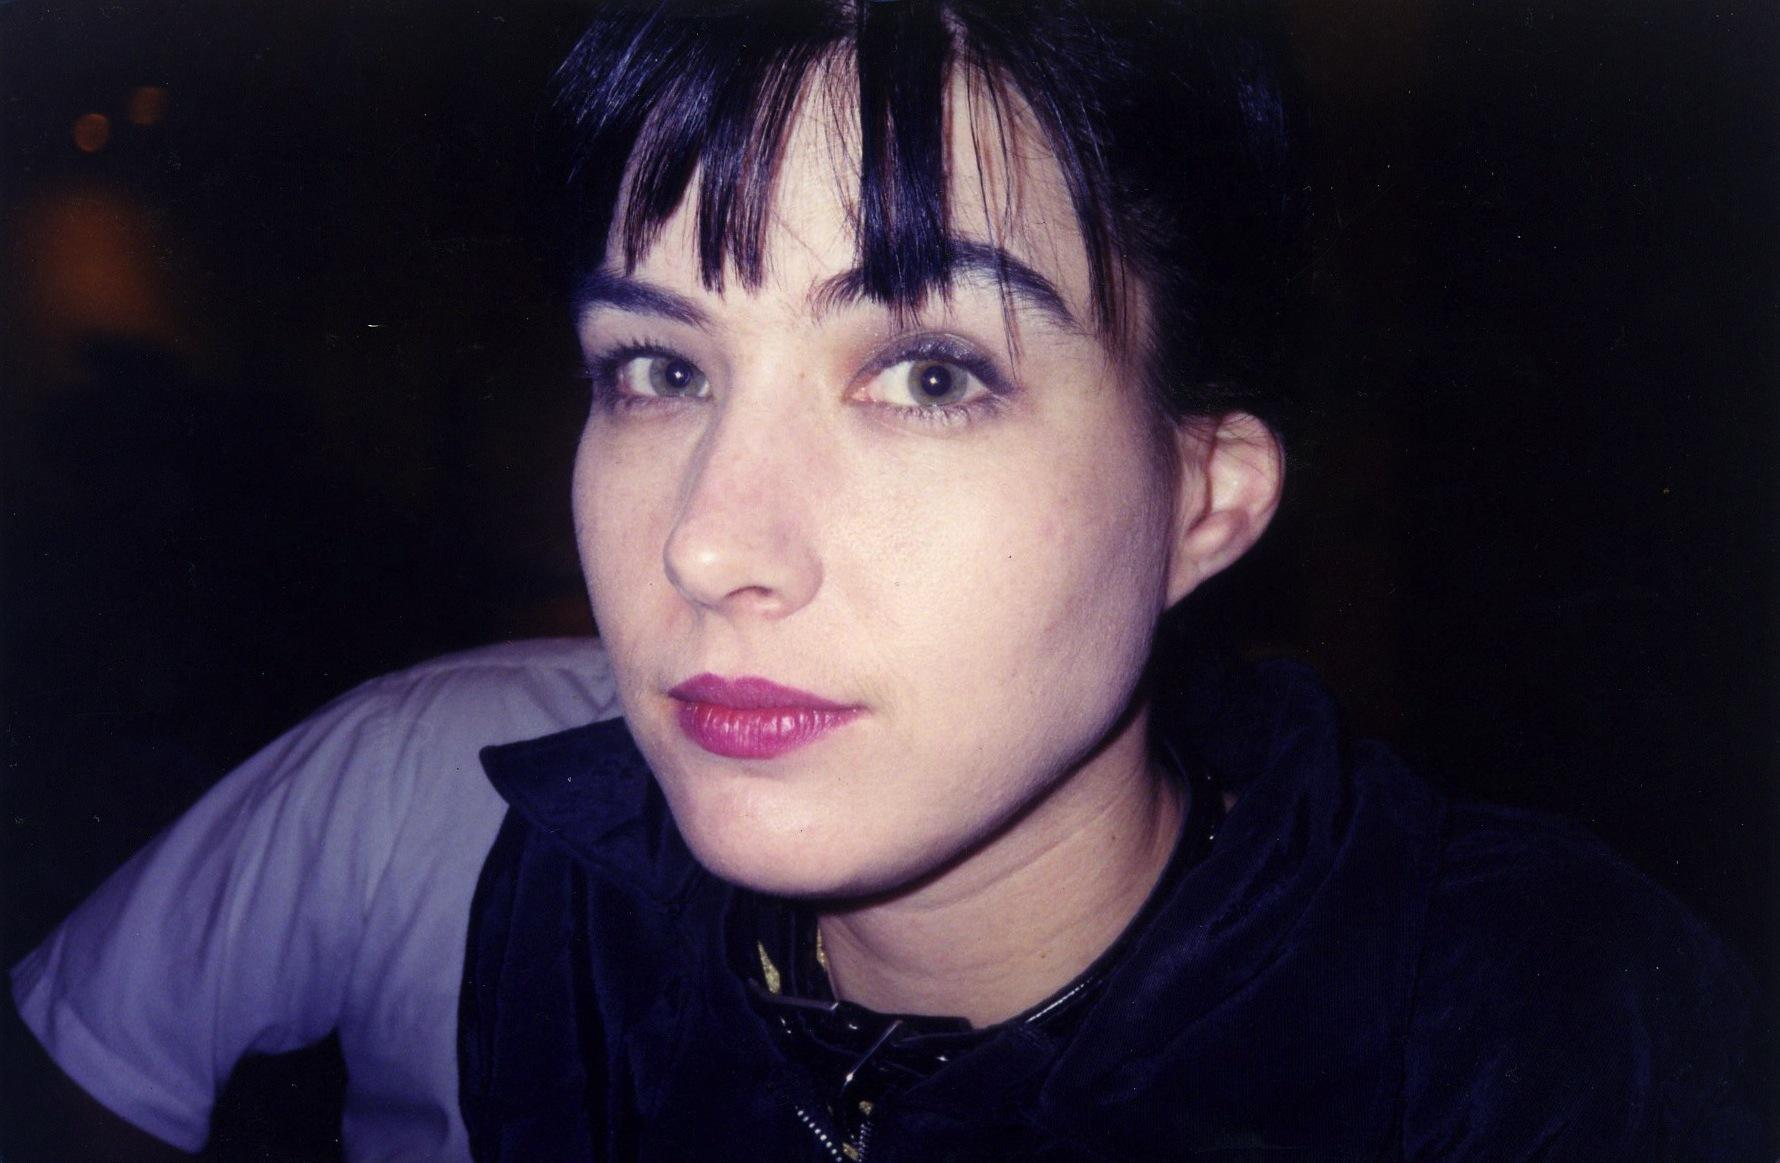 First Bikini Kill demo, 'Revolution Girl Style Now!' is being reissued. Kathleen Hanna features in The Punk Singer http://t.co/0JMvcBFfWC